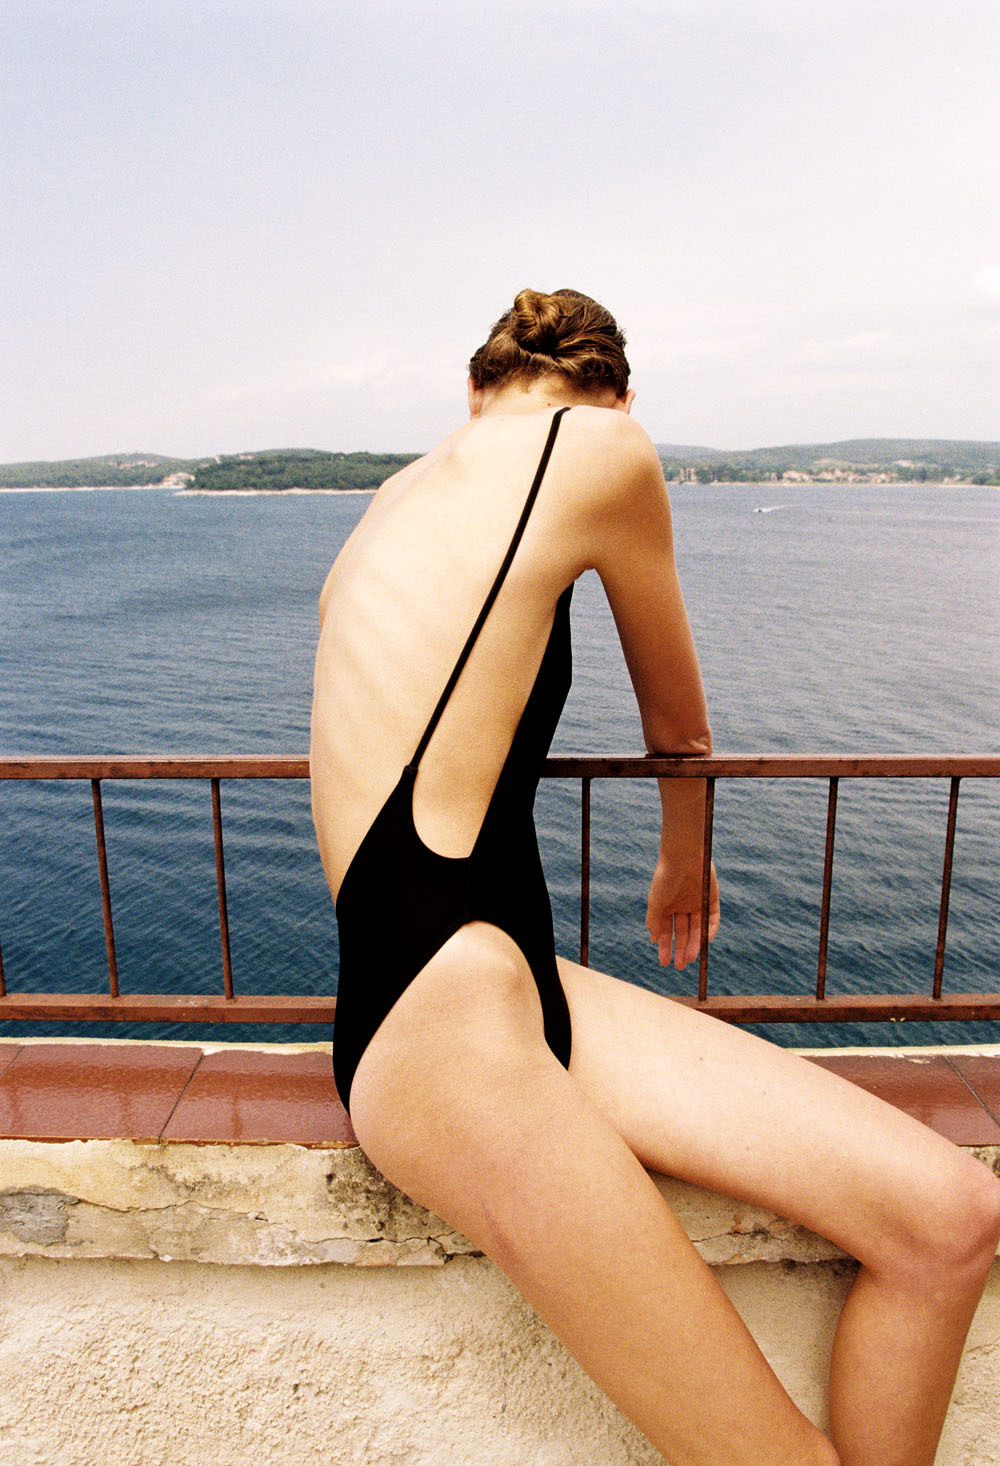 oystermag:  Oyster Fashion: 'Salt Water' By Bruna Kazinoti & Mark Vassallo American Apparel swimsuit